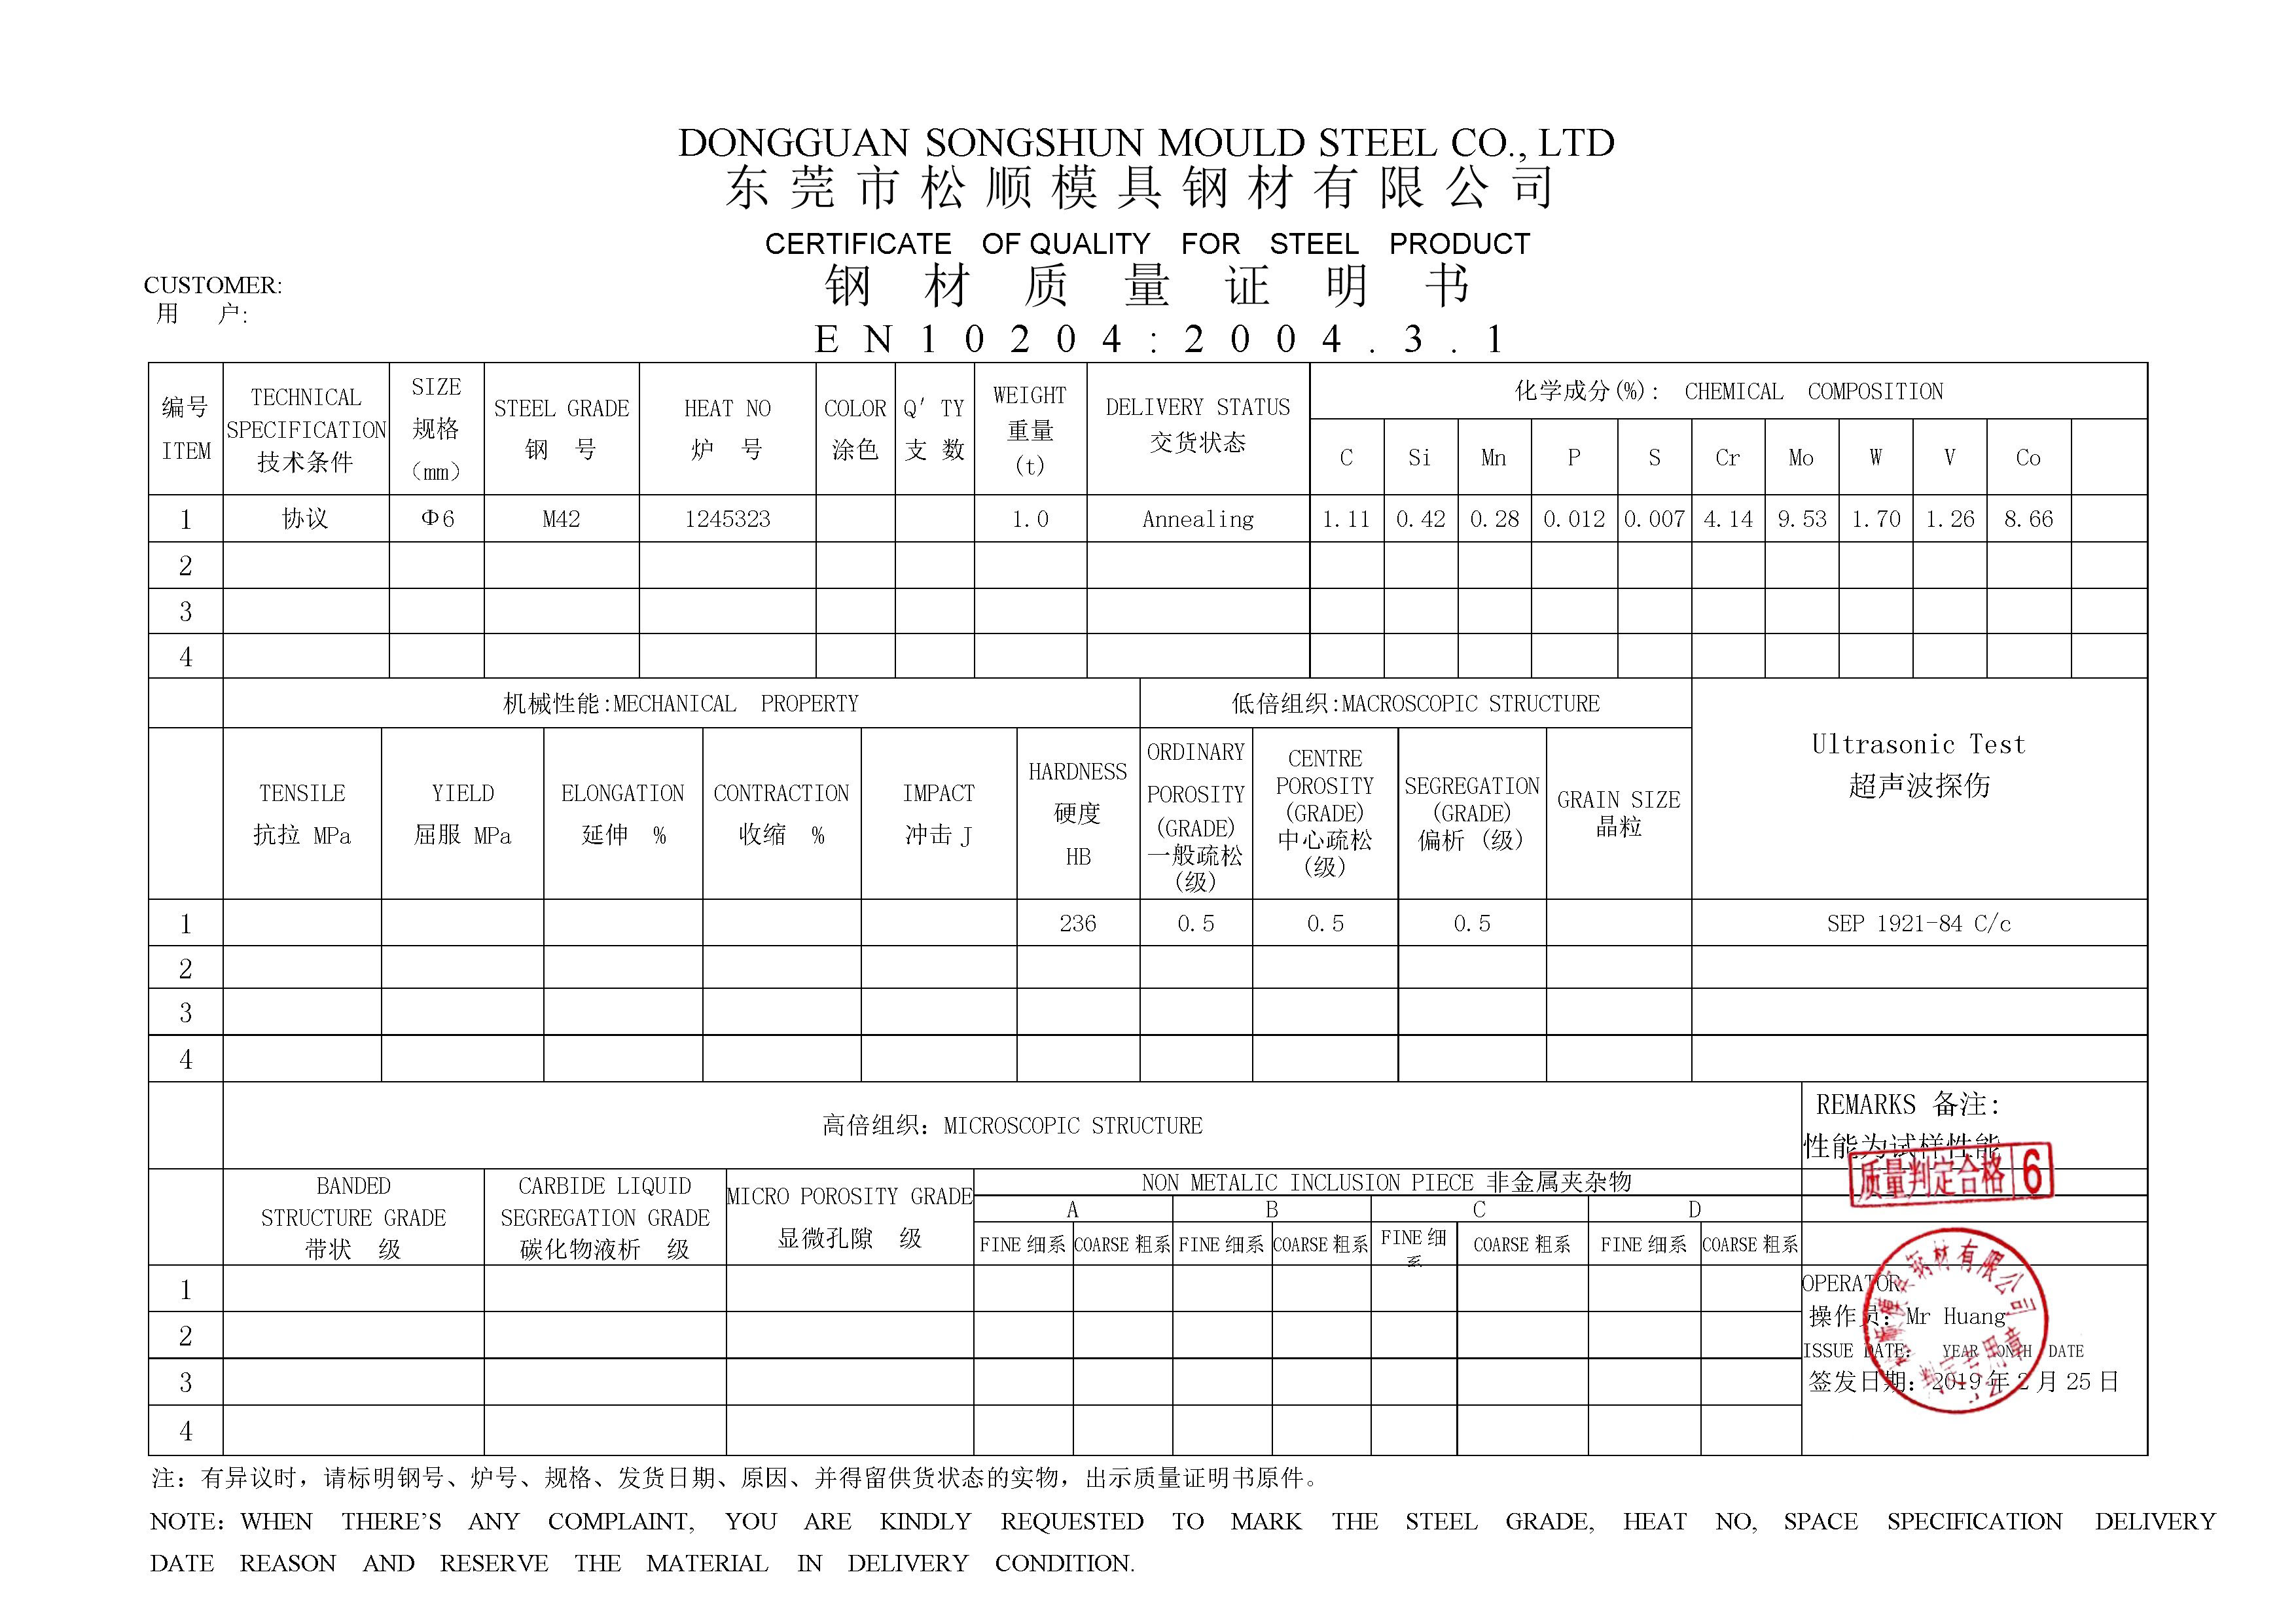 M42 steel quality certificate